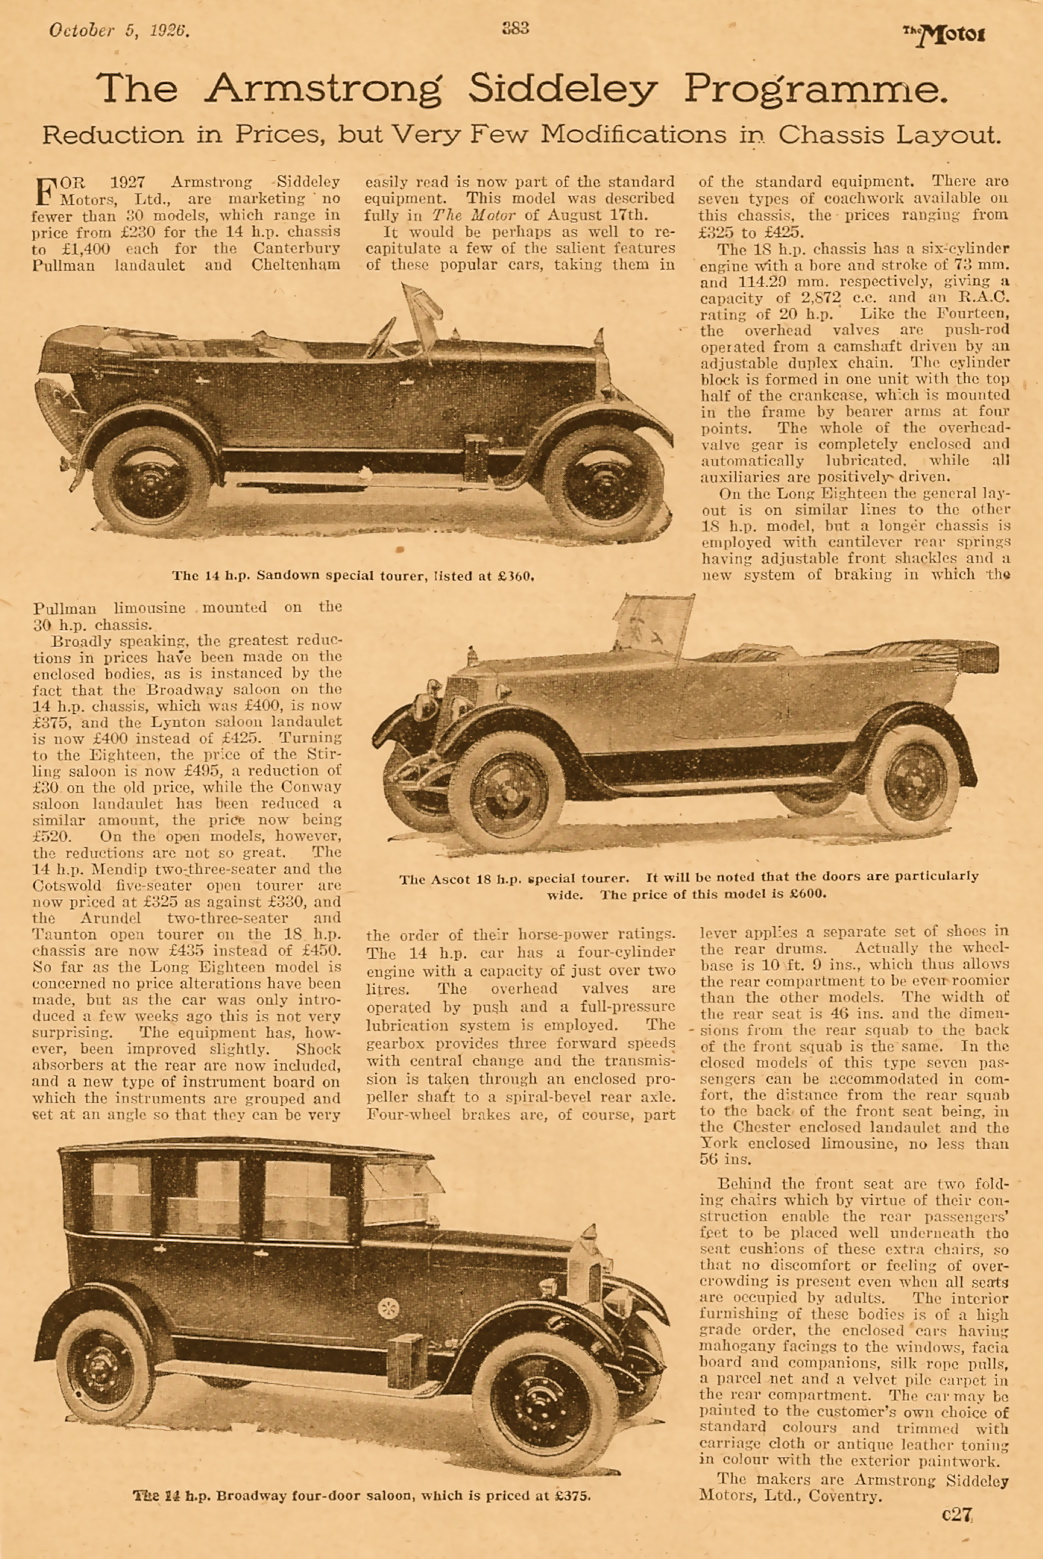 Armstrong Siddeley 1927 model range